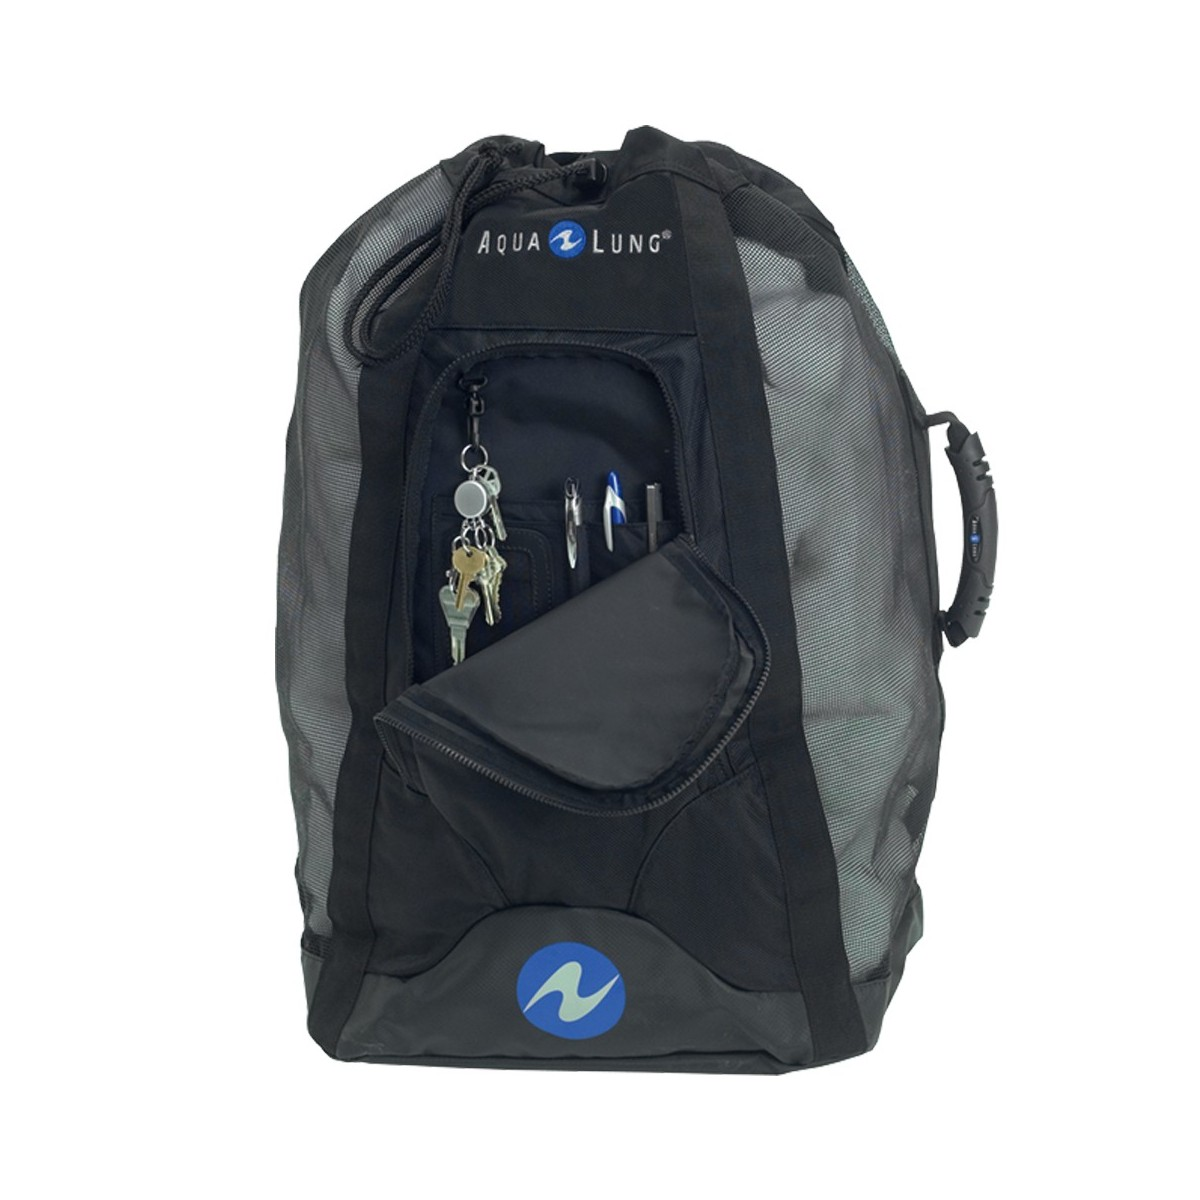 a5169d9775 Aqua lung Oceanpack Deluxe Mesh Backpack Bag. Hover to zoom